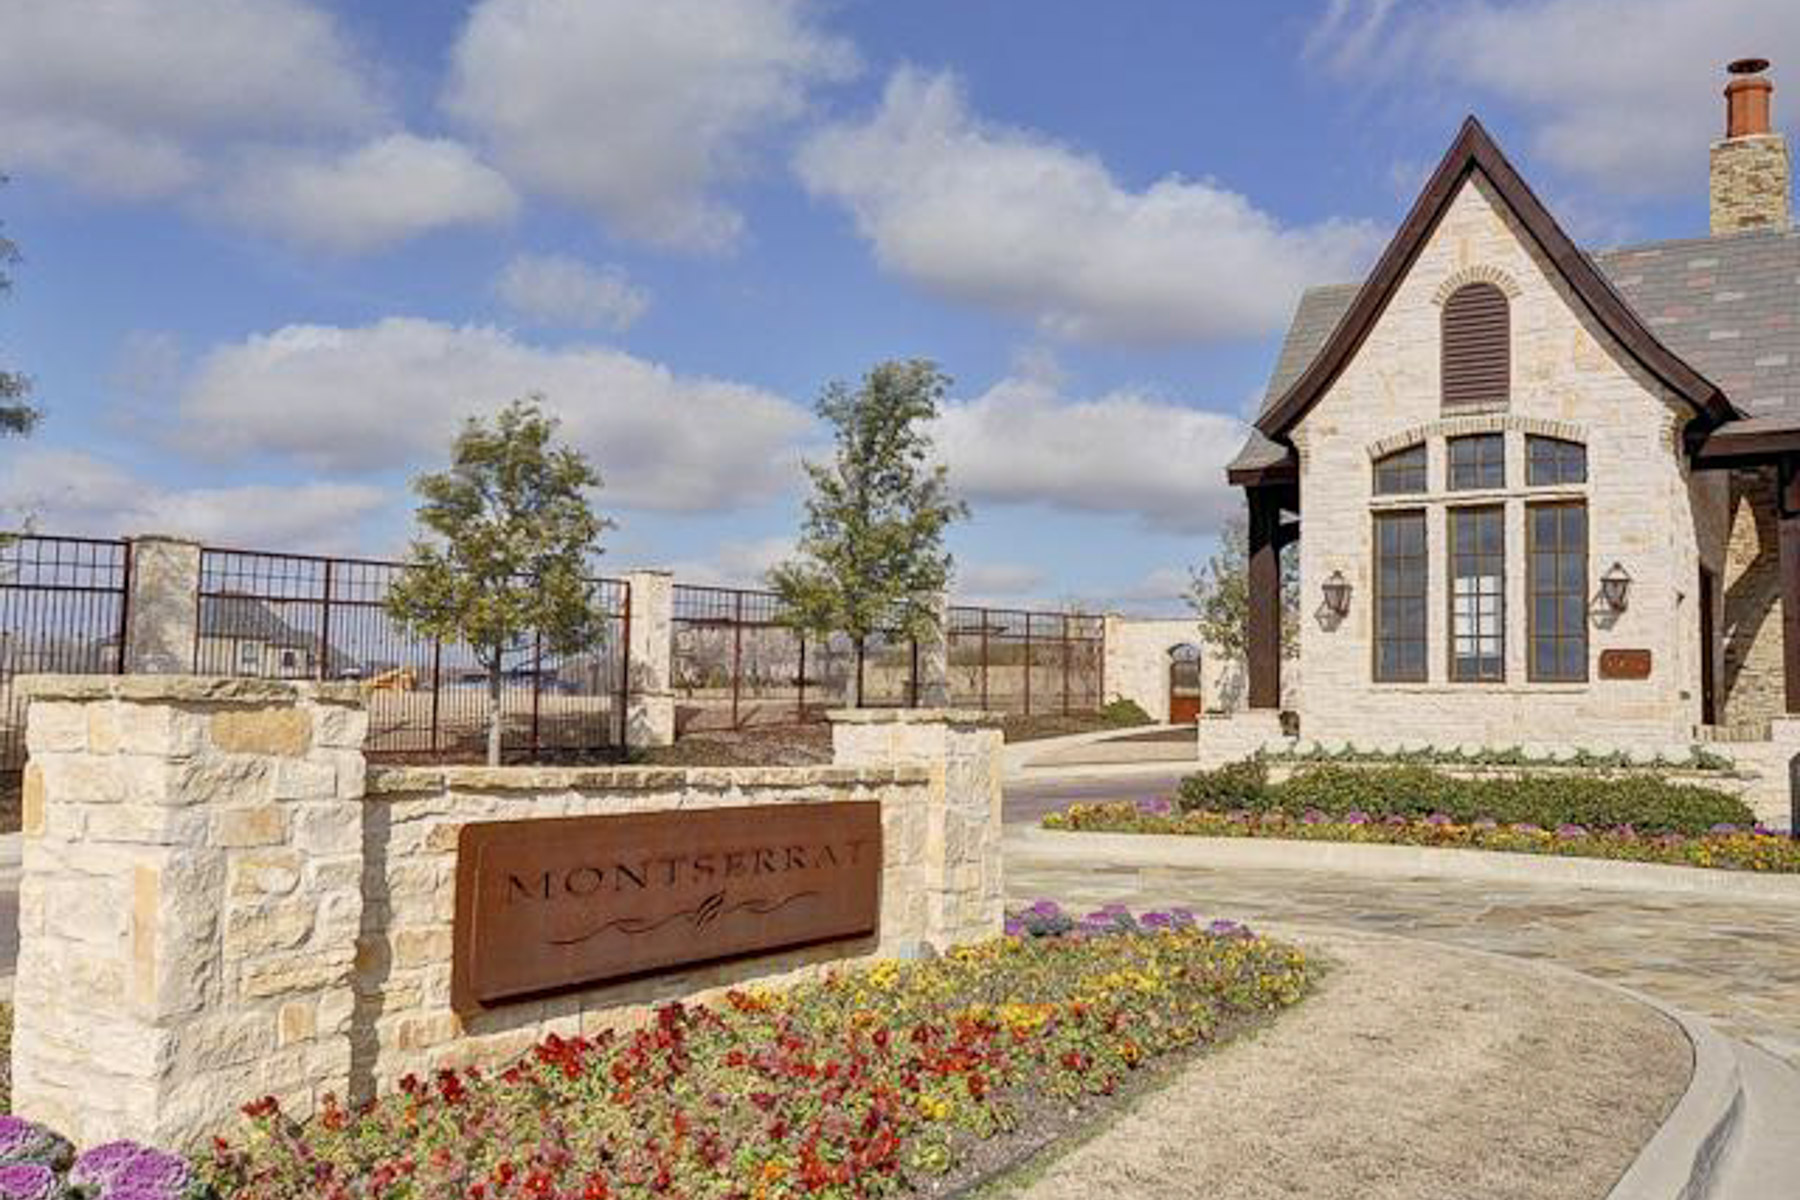 Land for Sale at Montserrat, Lot 4701 Benavente Court Fort Worth, Texas, 76126 United States